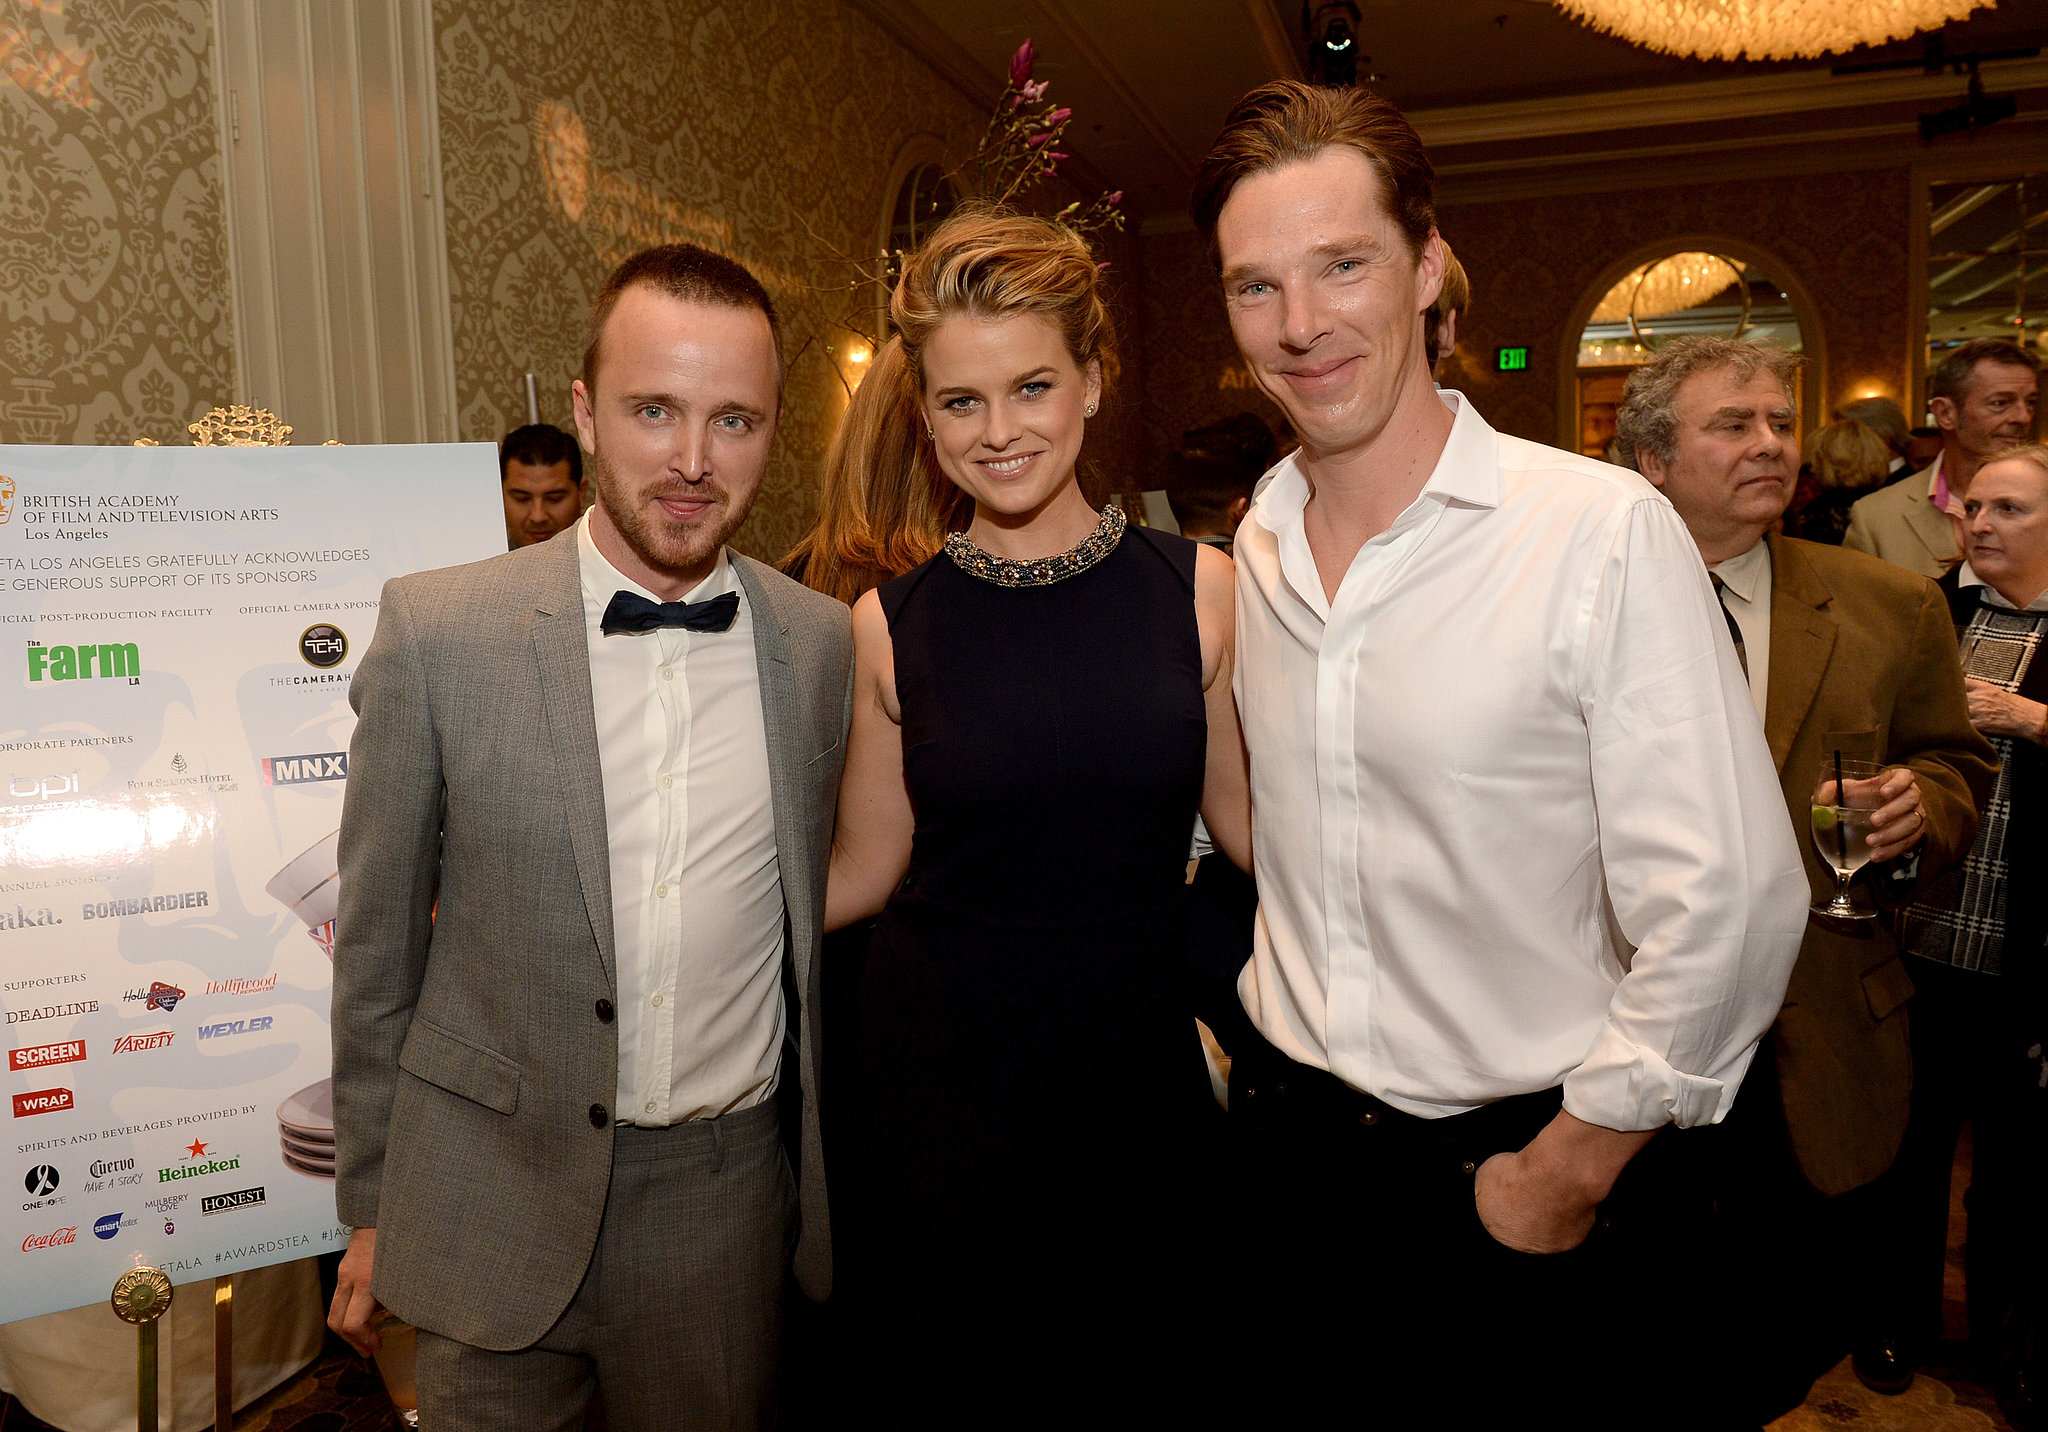 Gang's all here! Aaron Paul, Benedict Cumberbatch, and Alice Eve smiled for the camera.